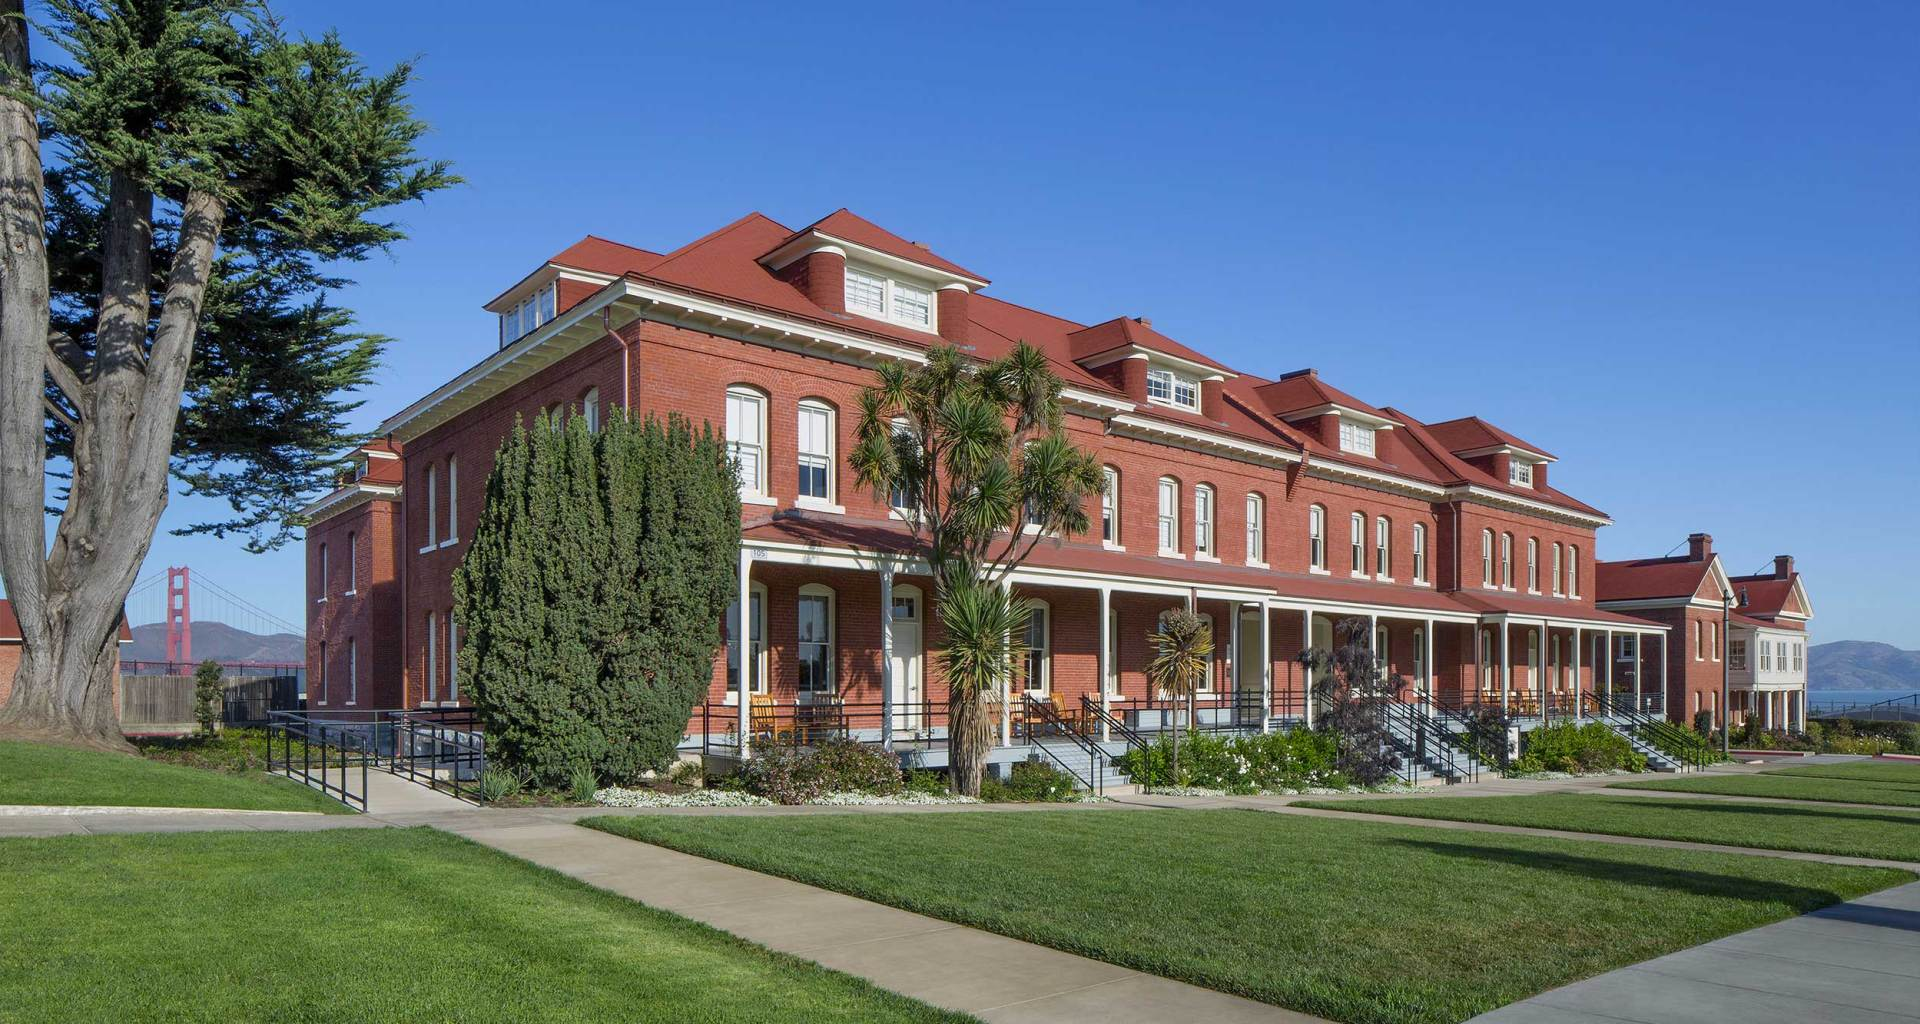 Exterior of The Lodge at the Presidio, a three story brick building sitting in front of the Golden Gate Bridge.